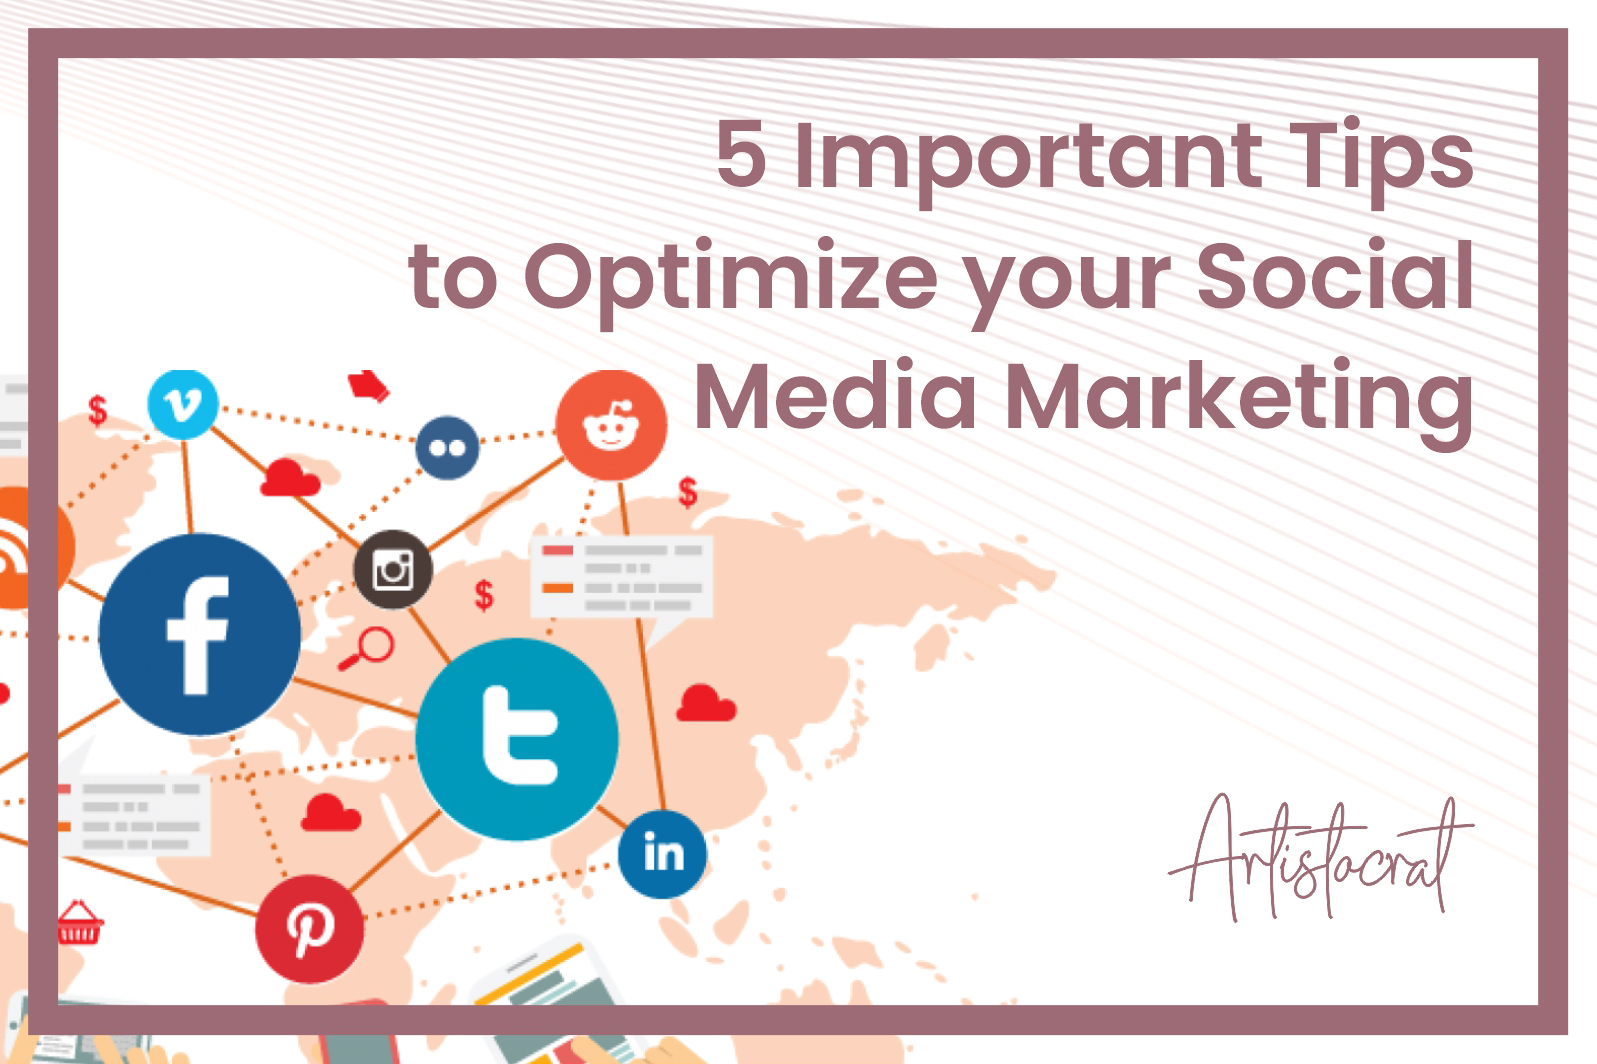 5-Important-Tips-Optimize-Your-Social-Media-Marketing